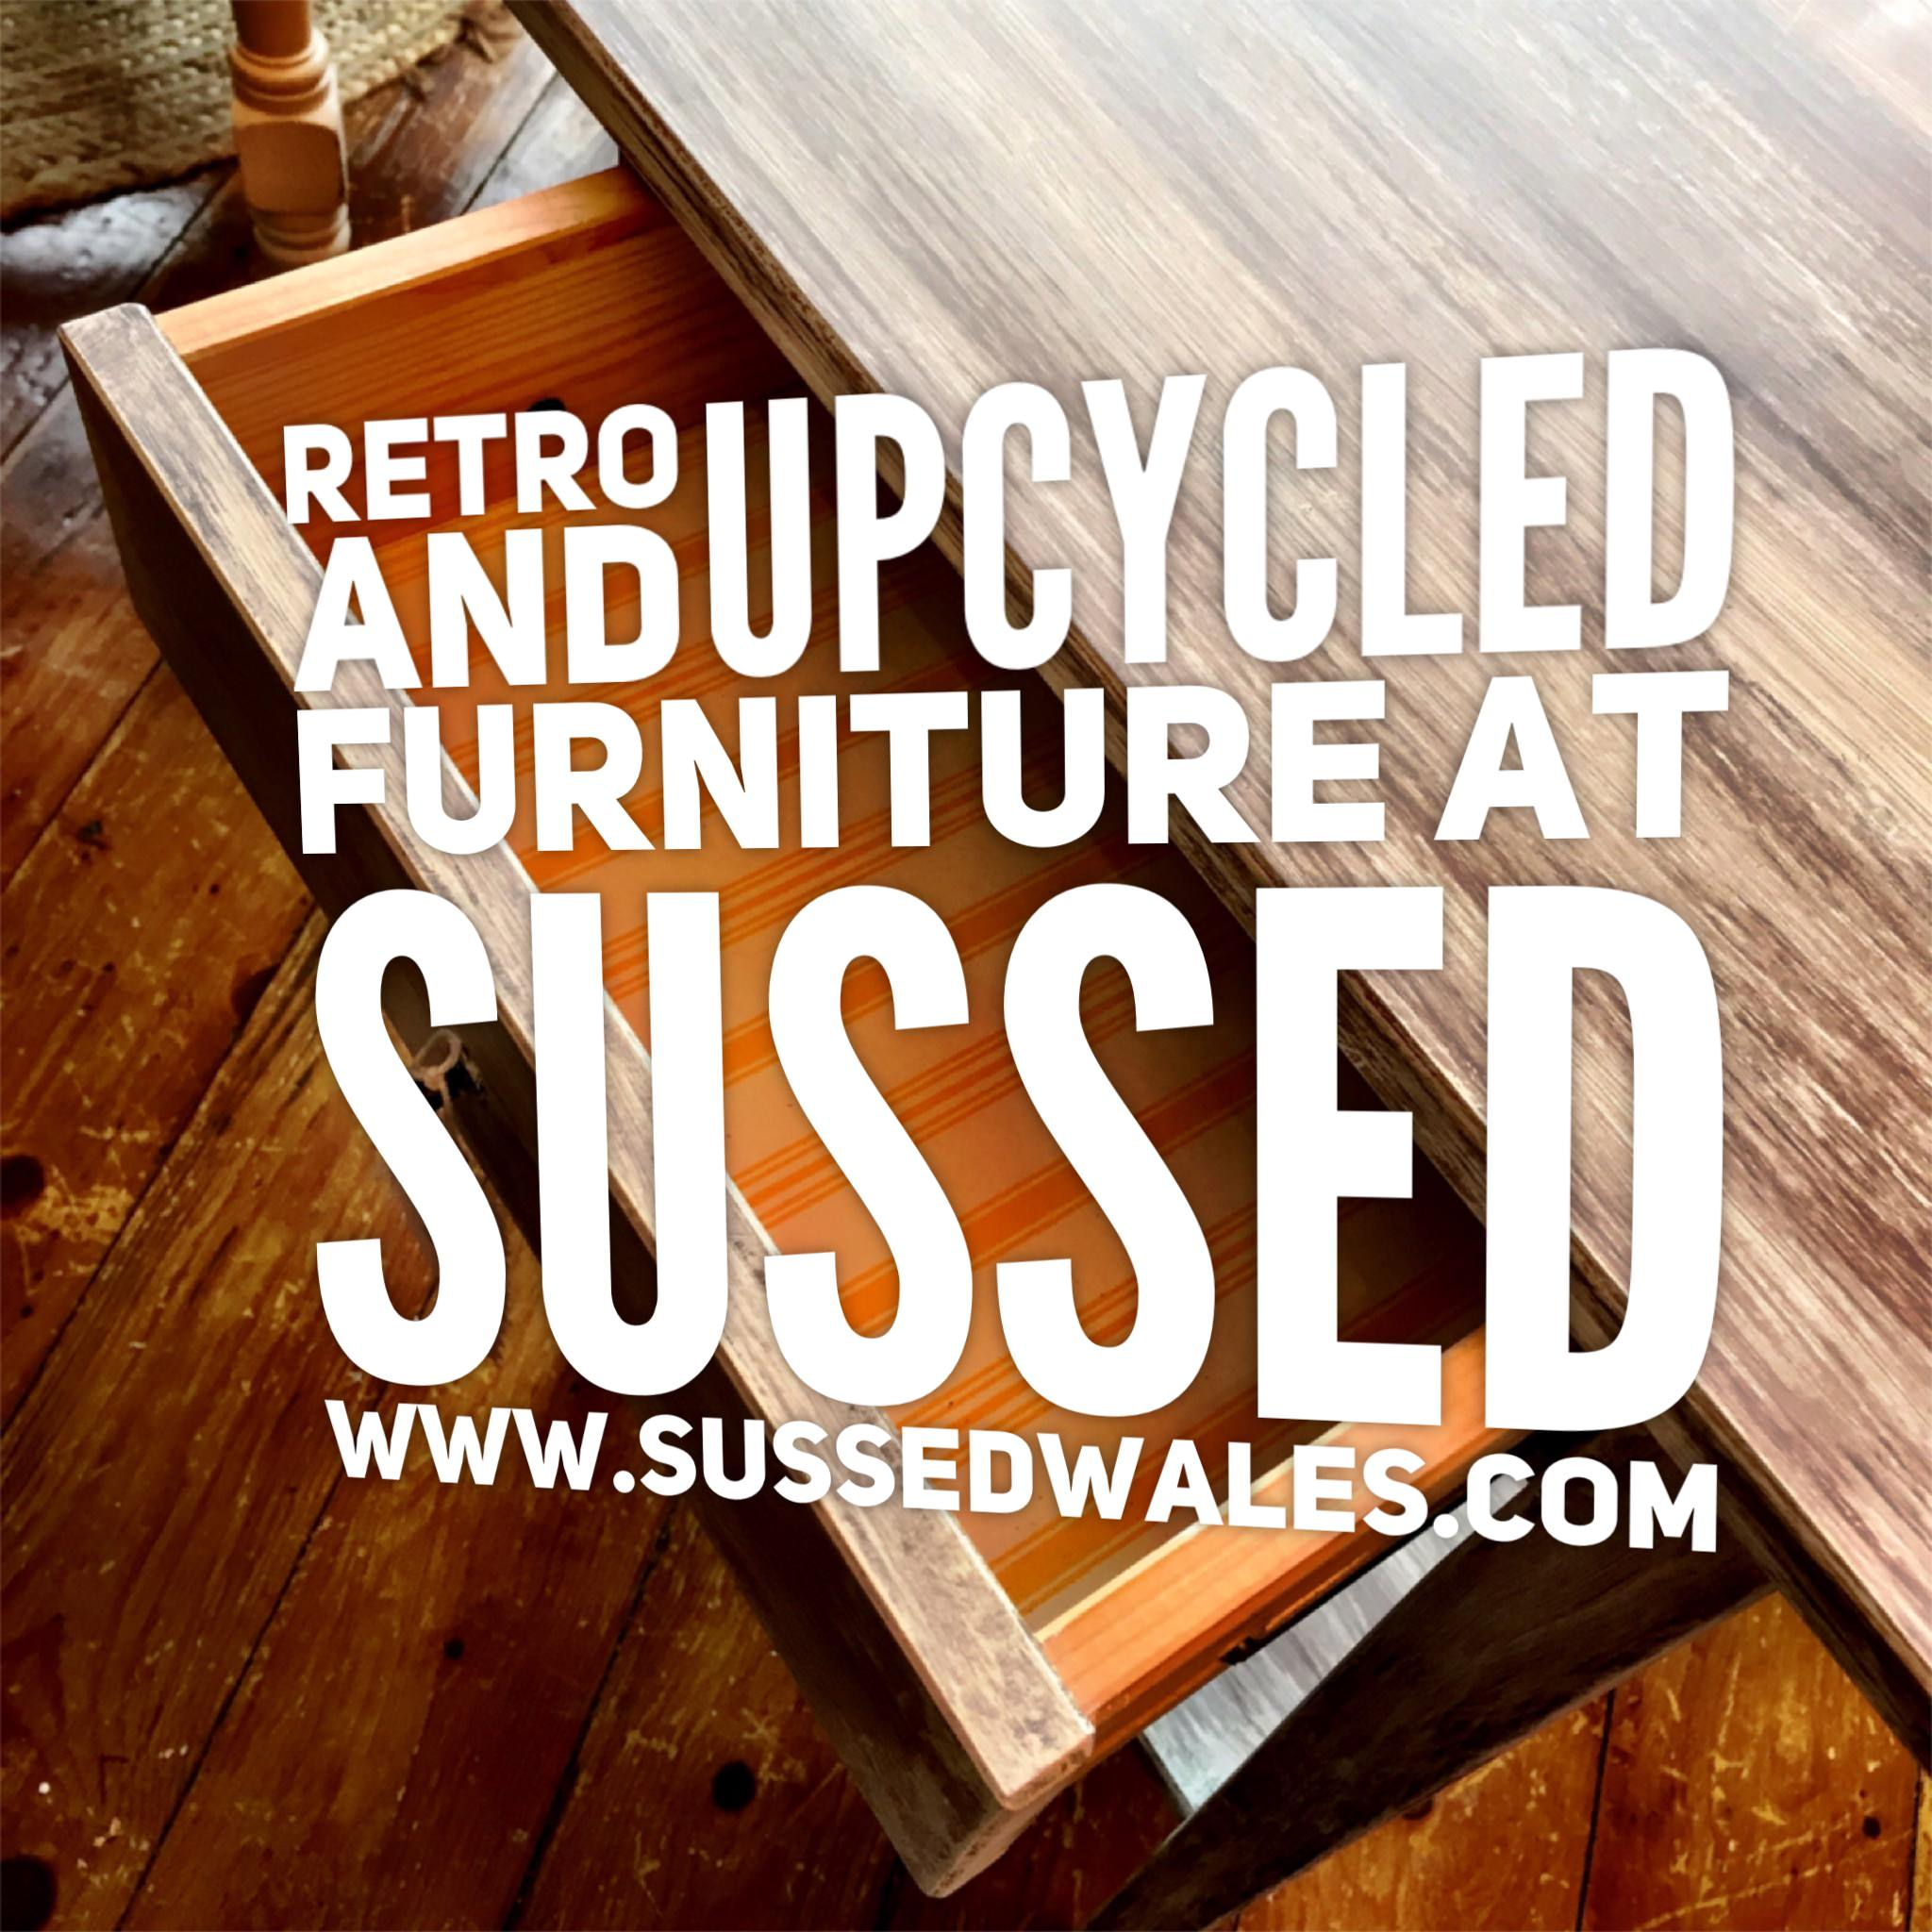 retro and upcycled furniture.jpg